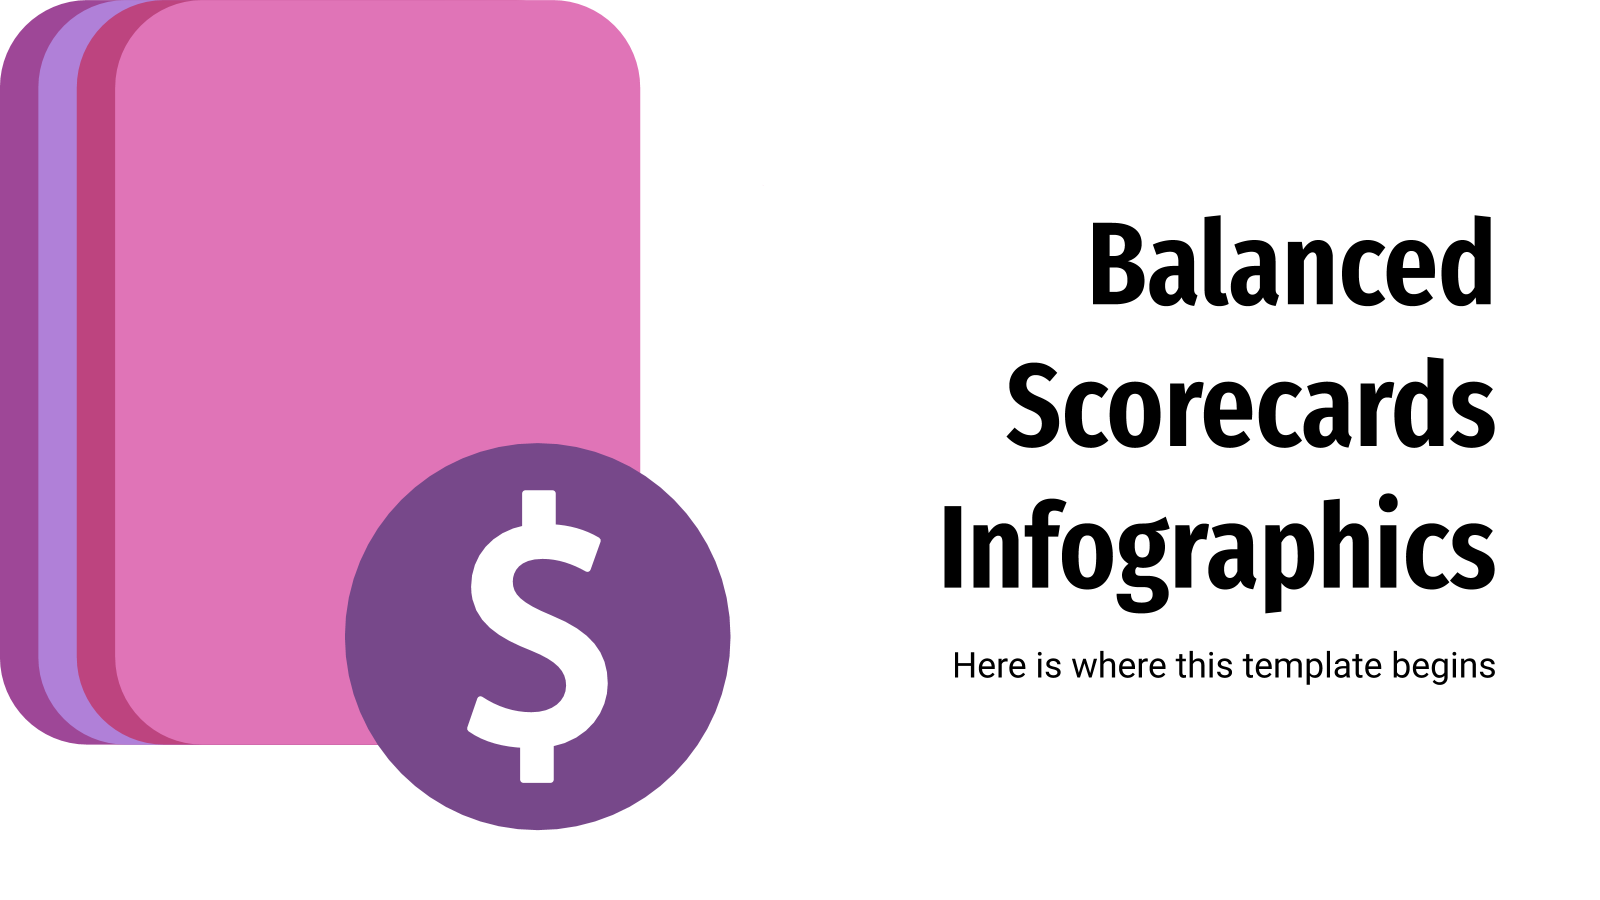 Balanced Scorecards Infographics presentation template